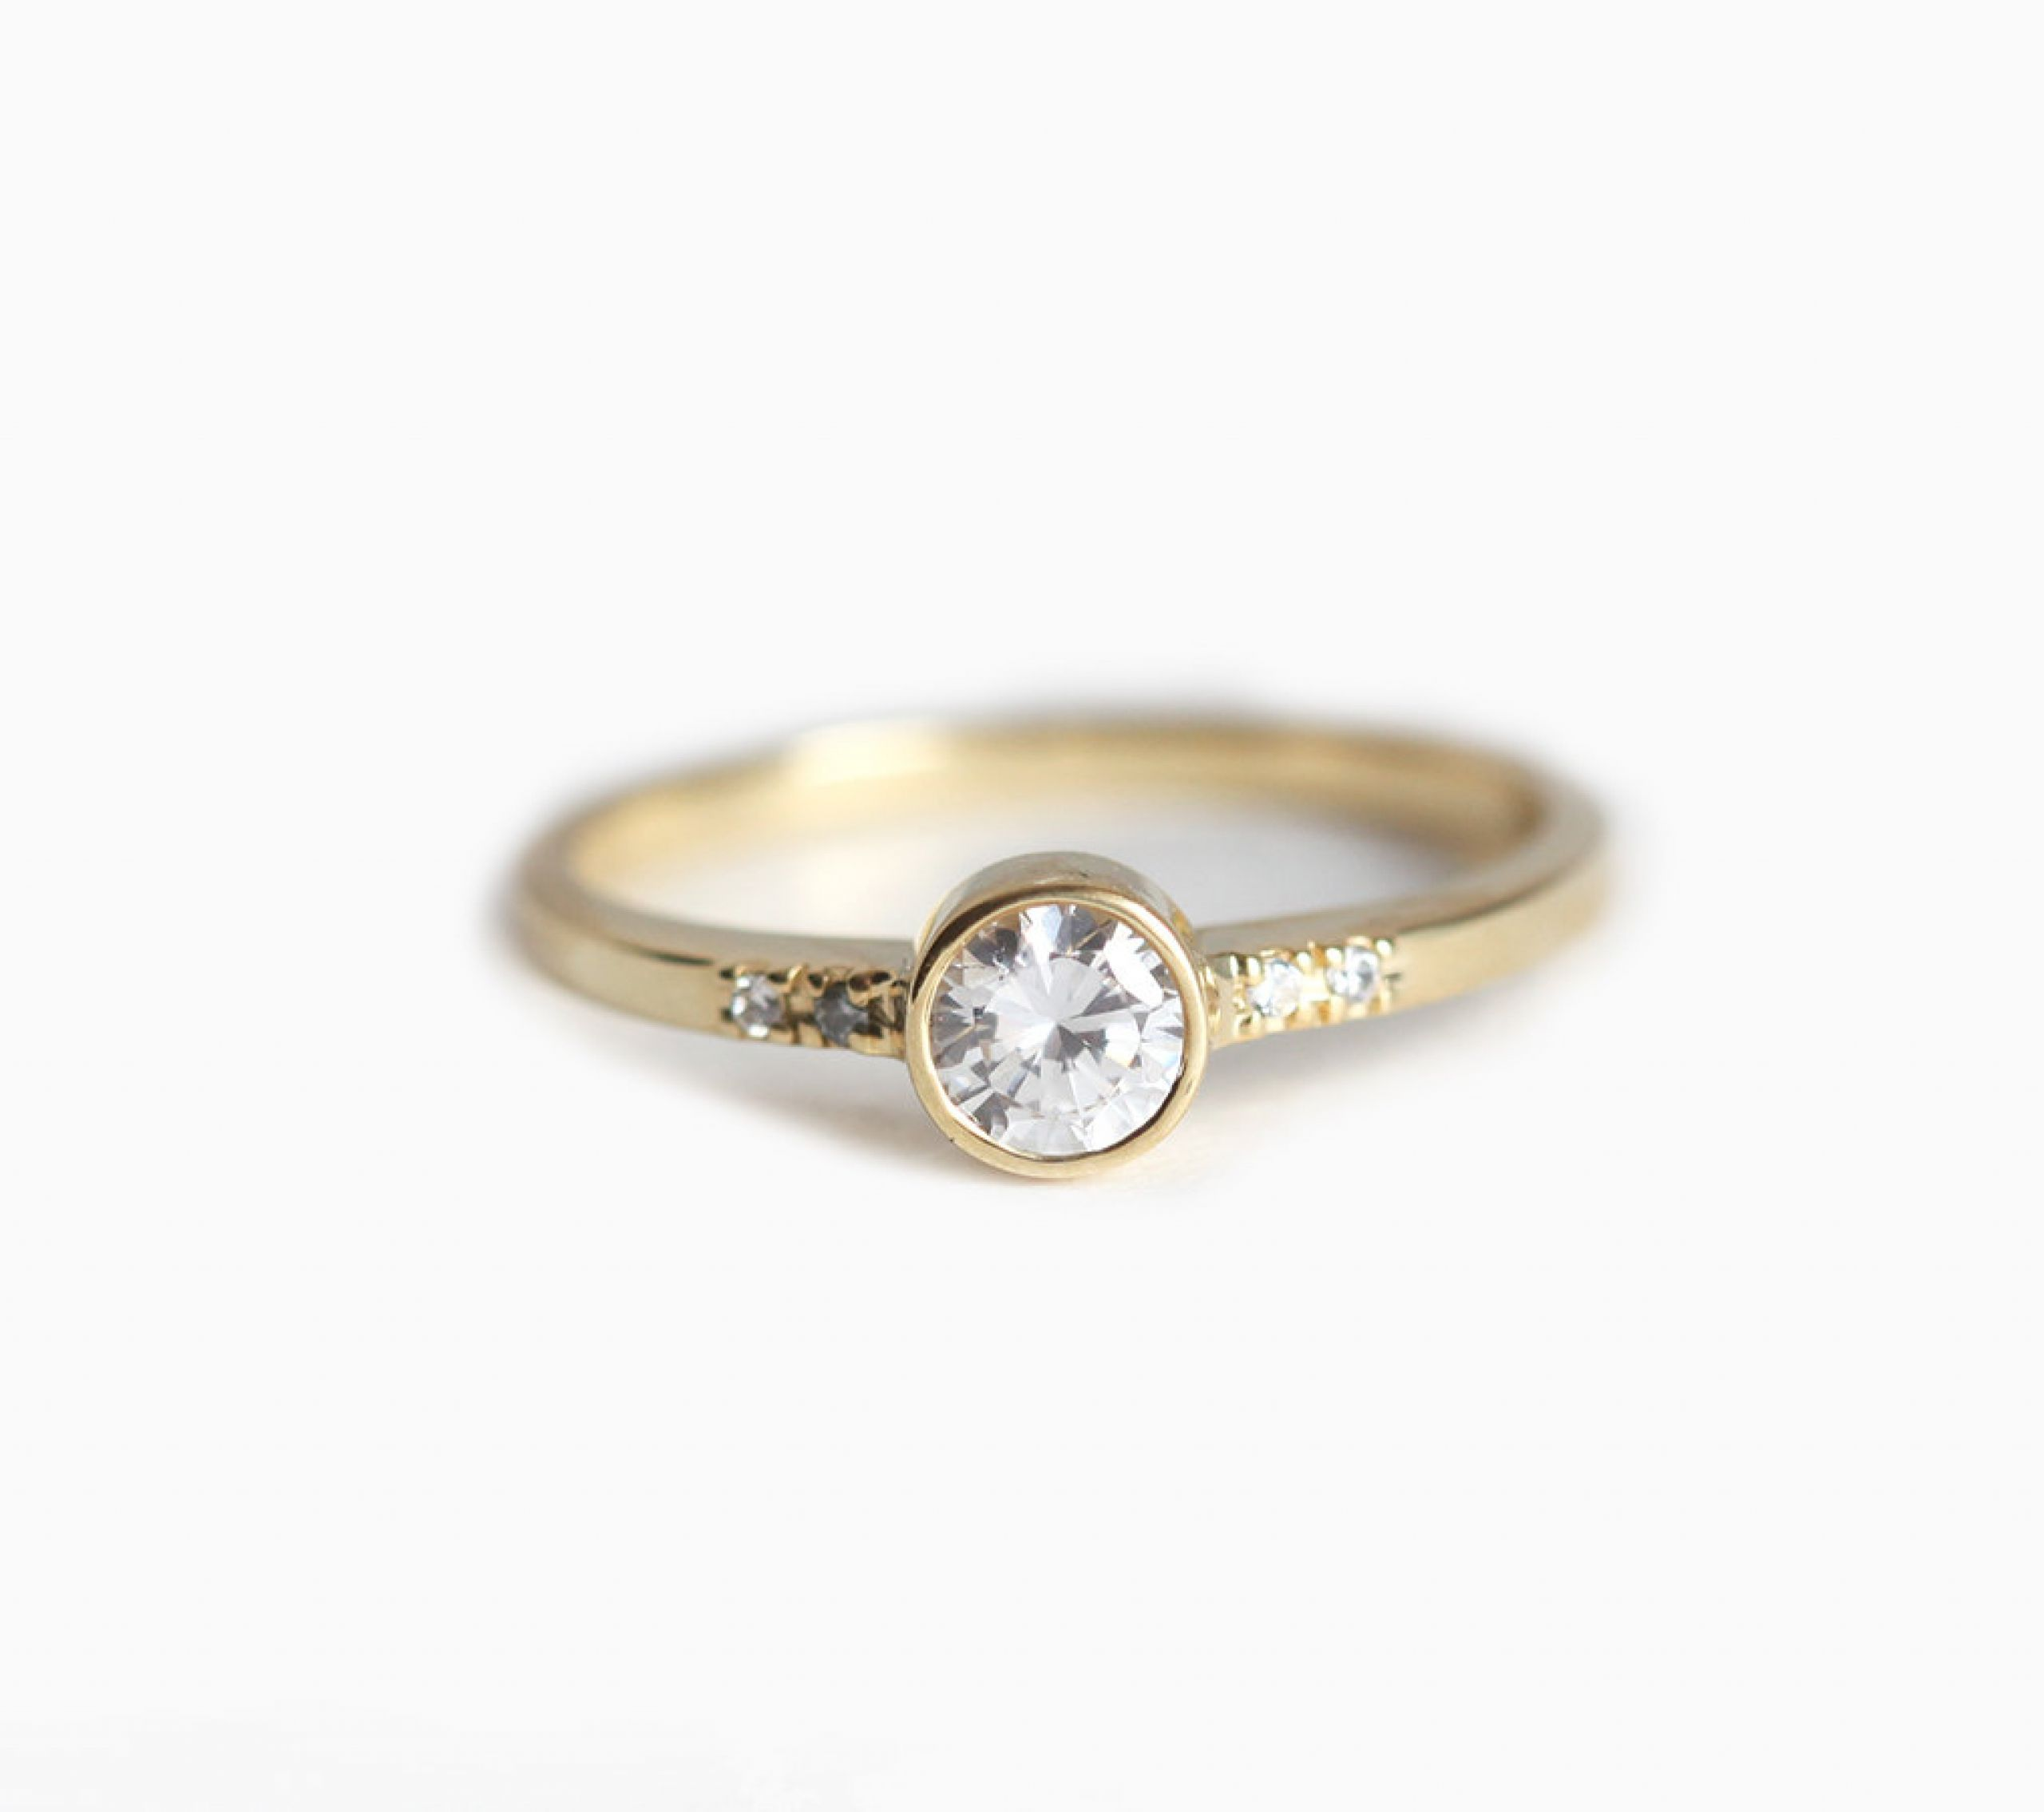 intl for solitaire rings brilliant brisbane sky you di engagement cut diamonds customised diamond ring loni